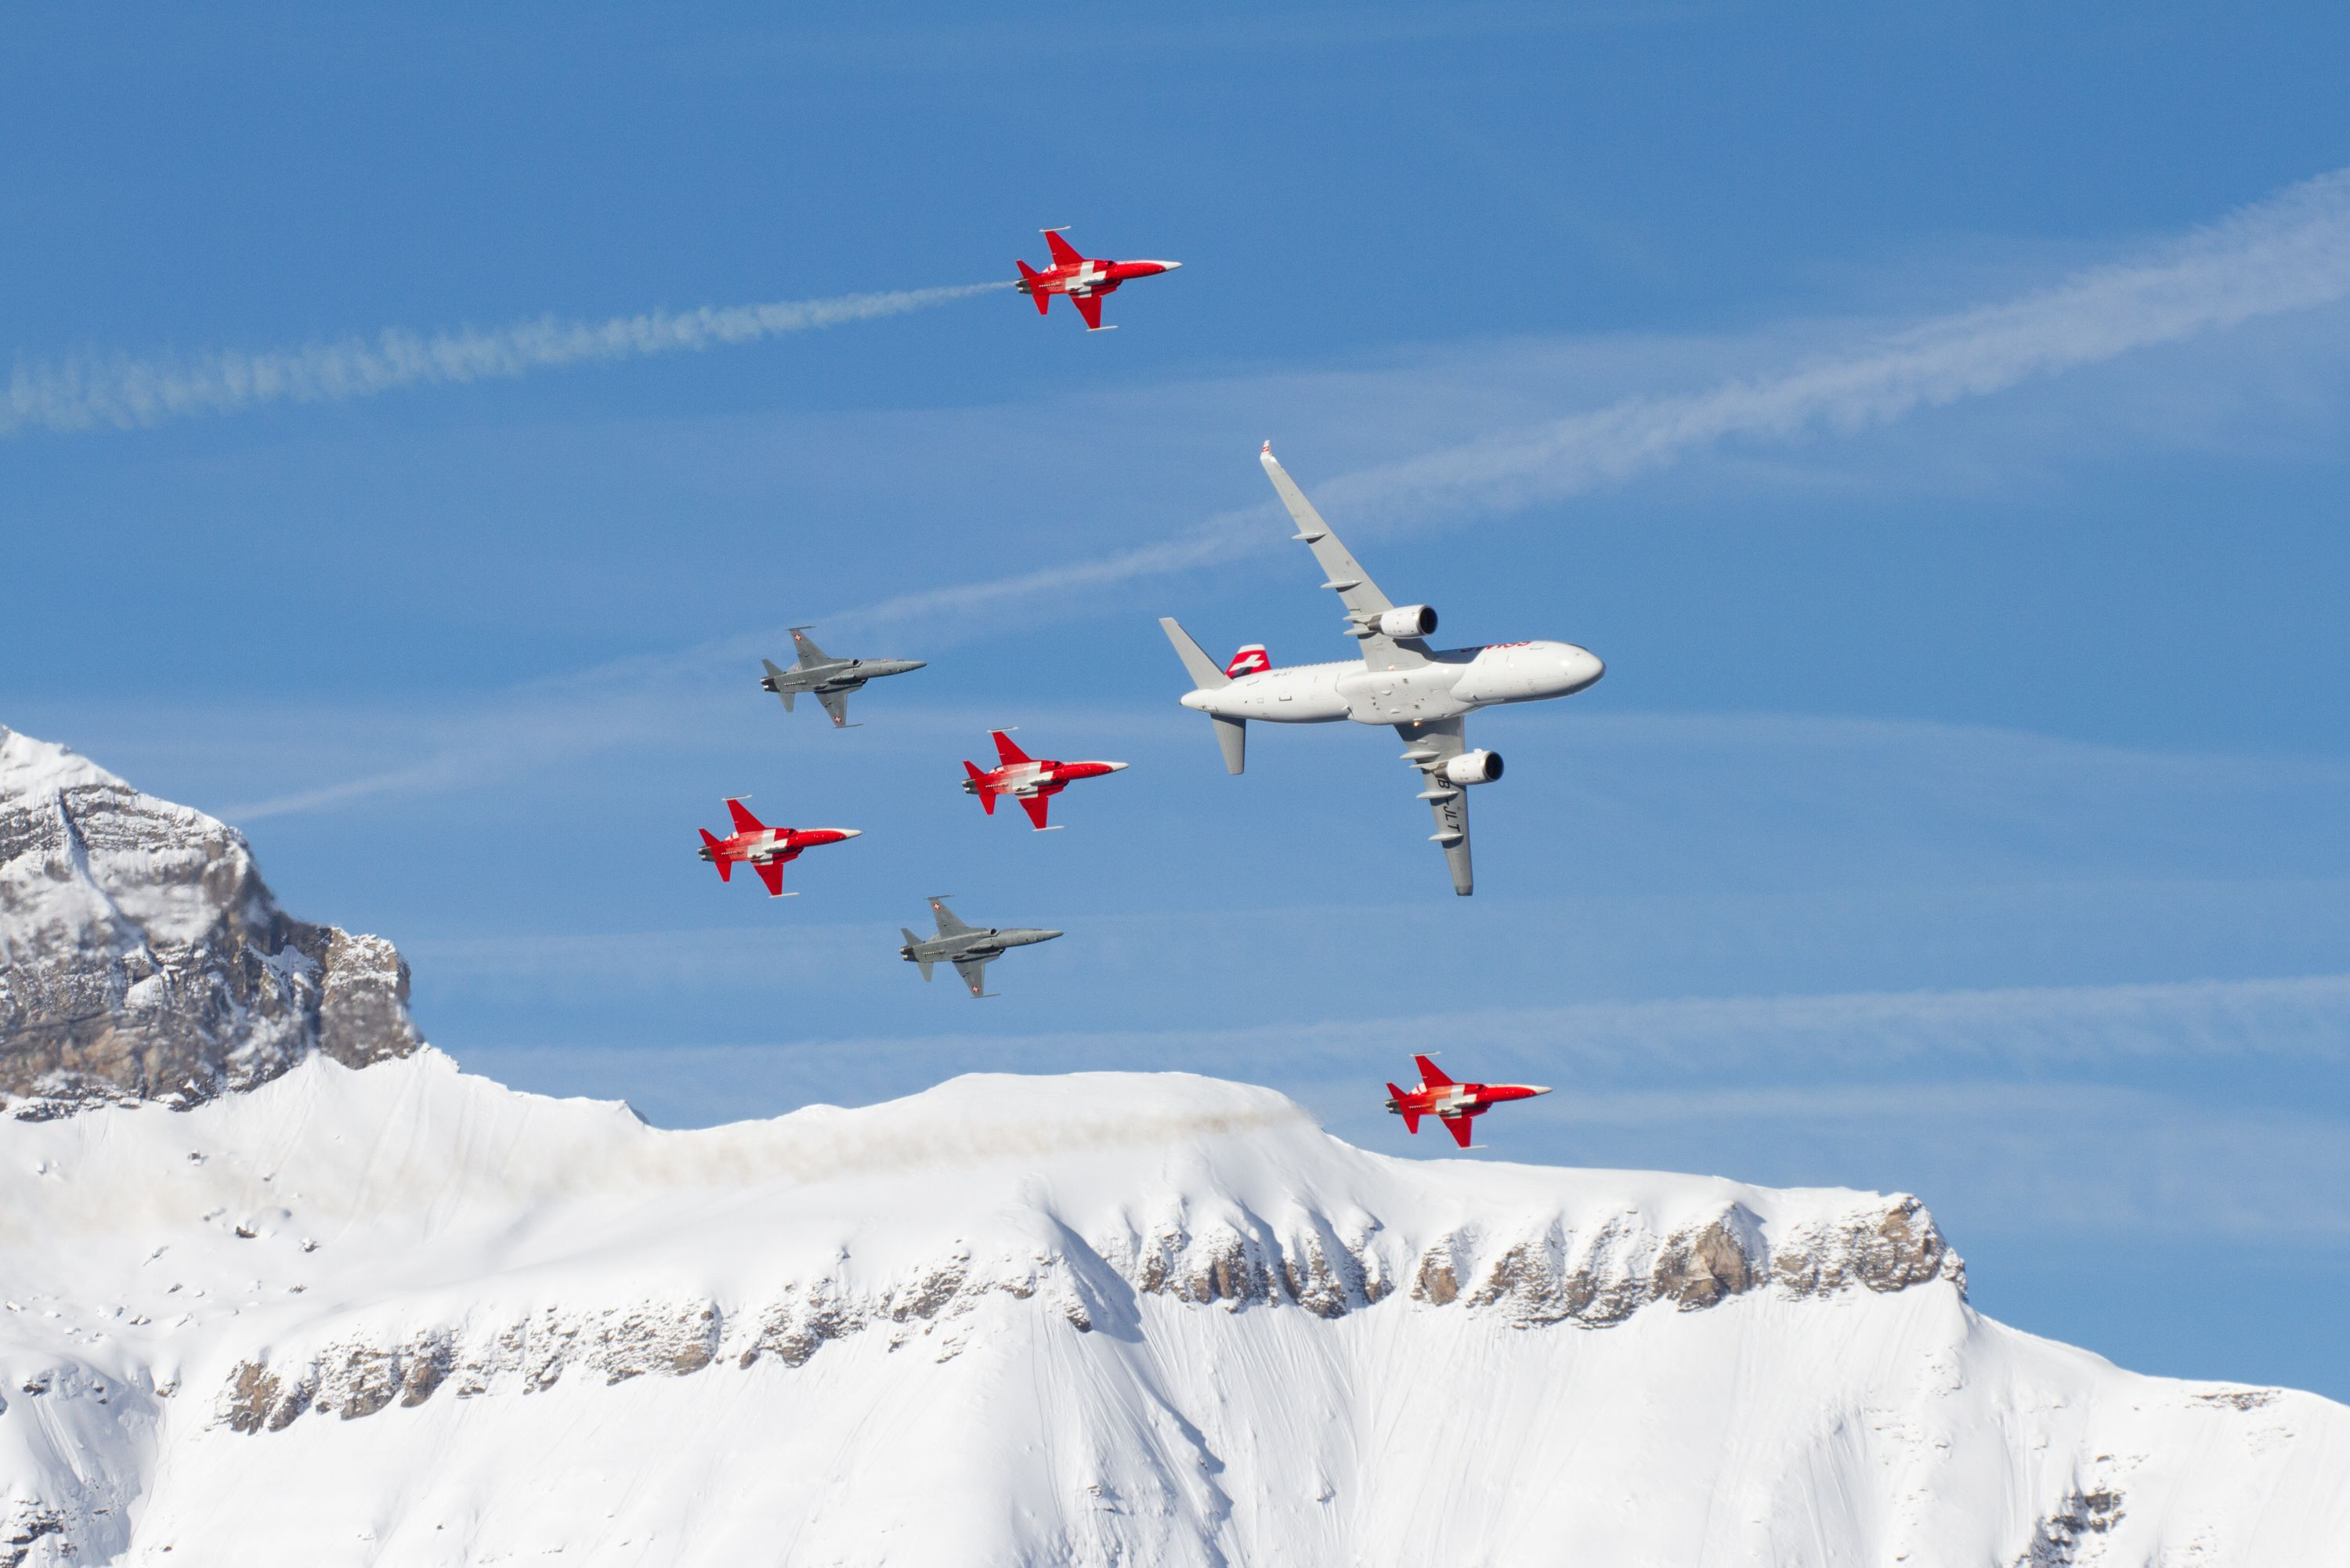 SWISS flypast together with Patrouille Suisse